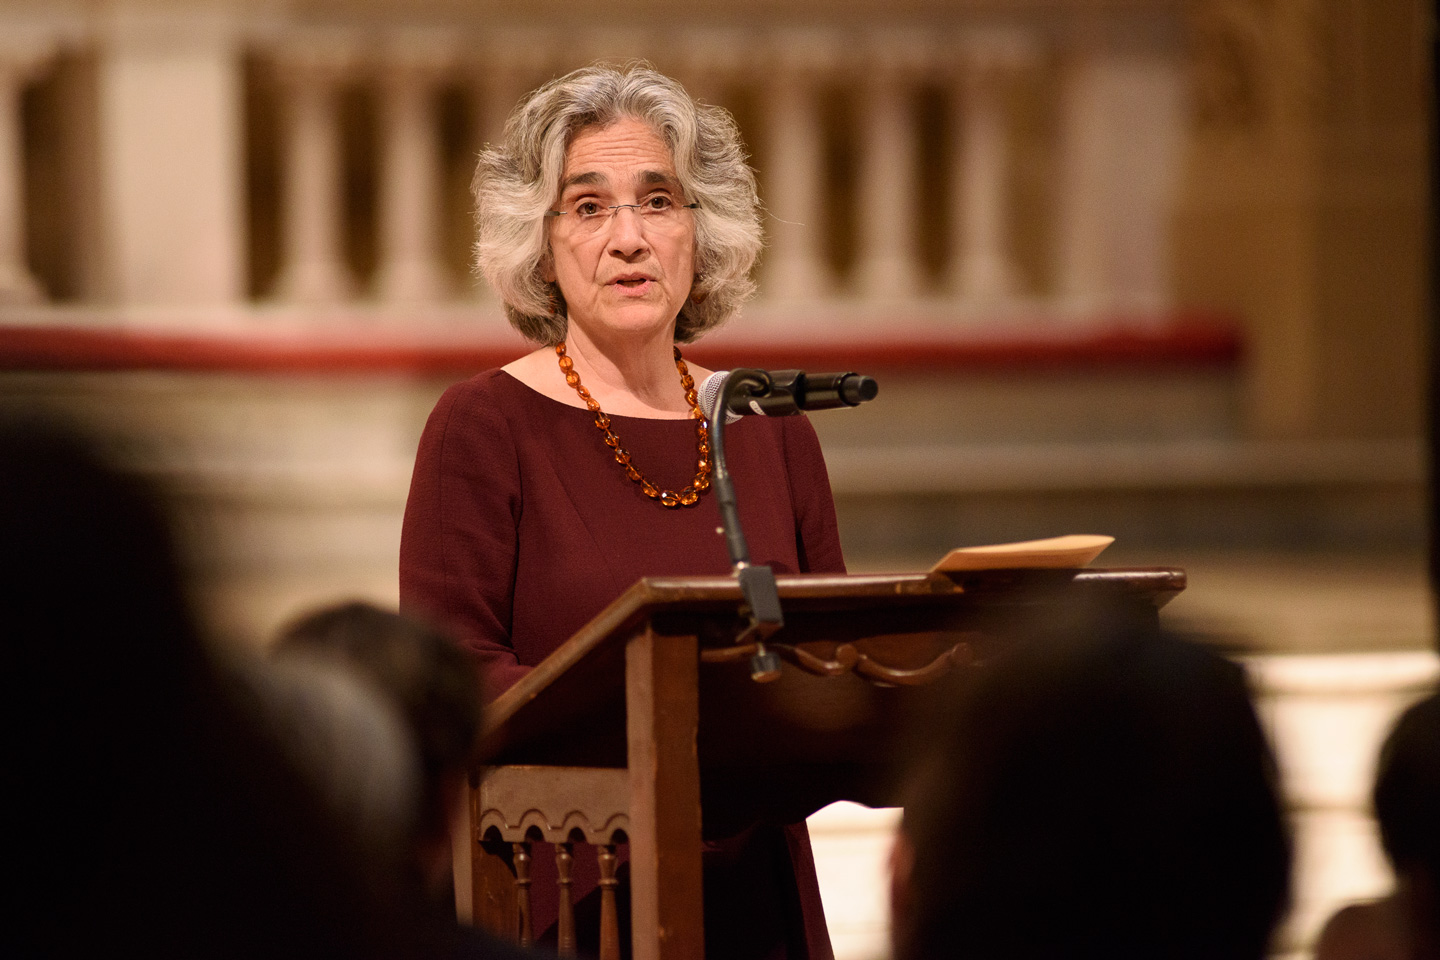 Persis Drell at lectern in Memorial Church during Inauguration Day community gathering